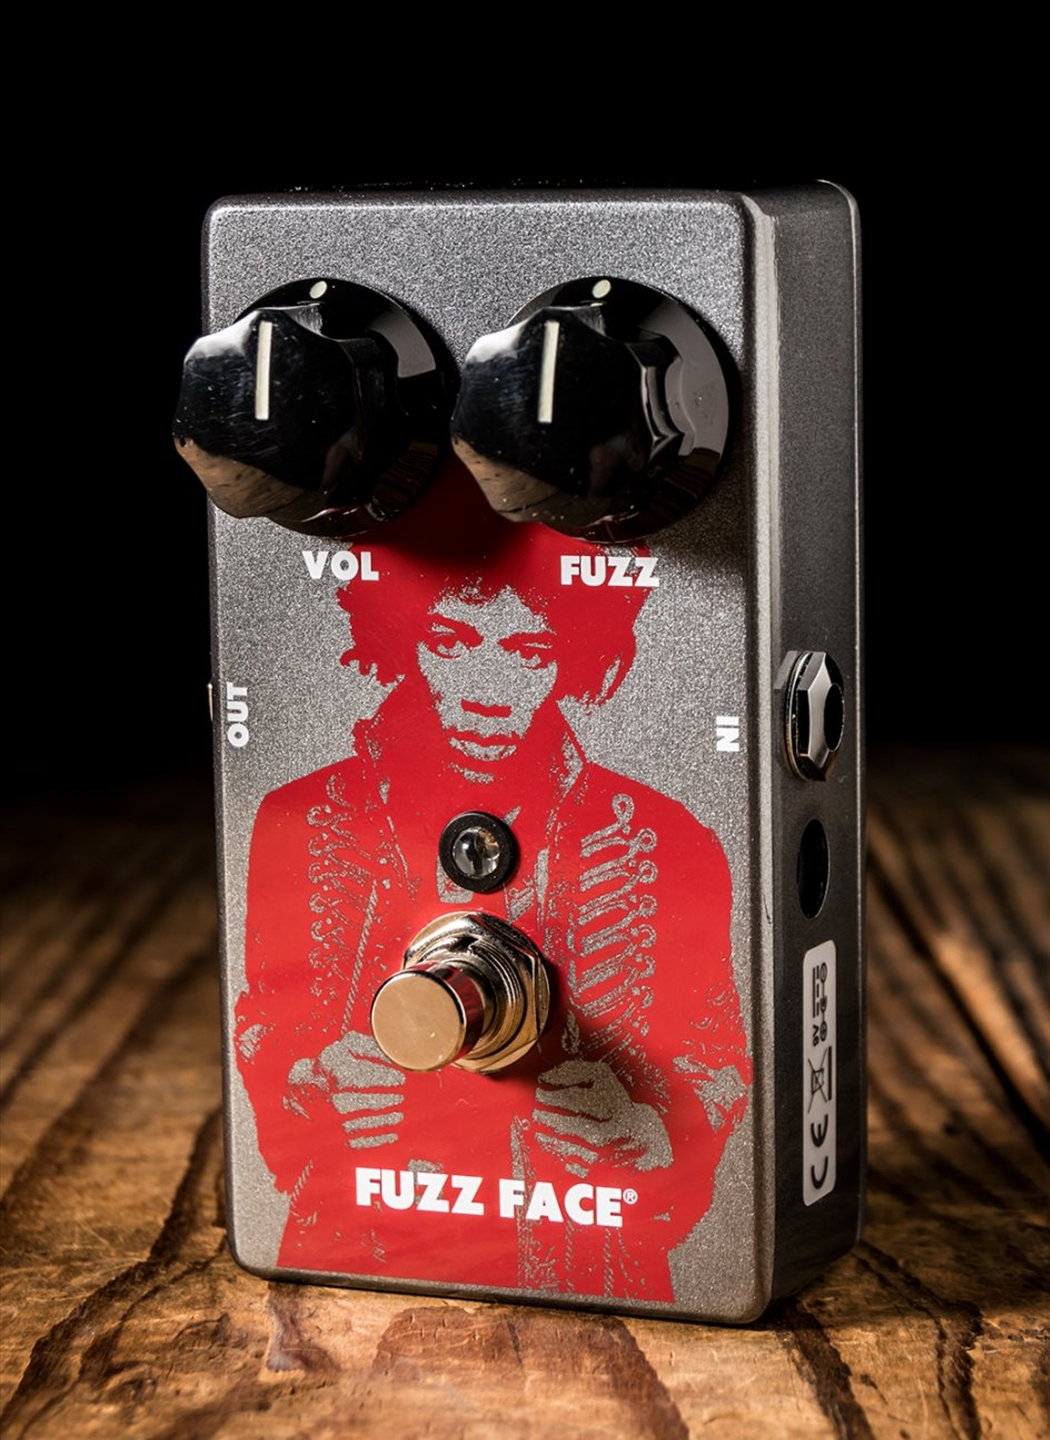 Dunlop Jhm5 Jimi Hendrix Fuzz Face Distortion Pedal Jimmy Guitar Effect Schematic Diagram Tap To Expand